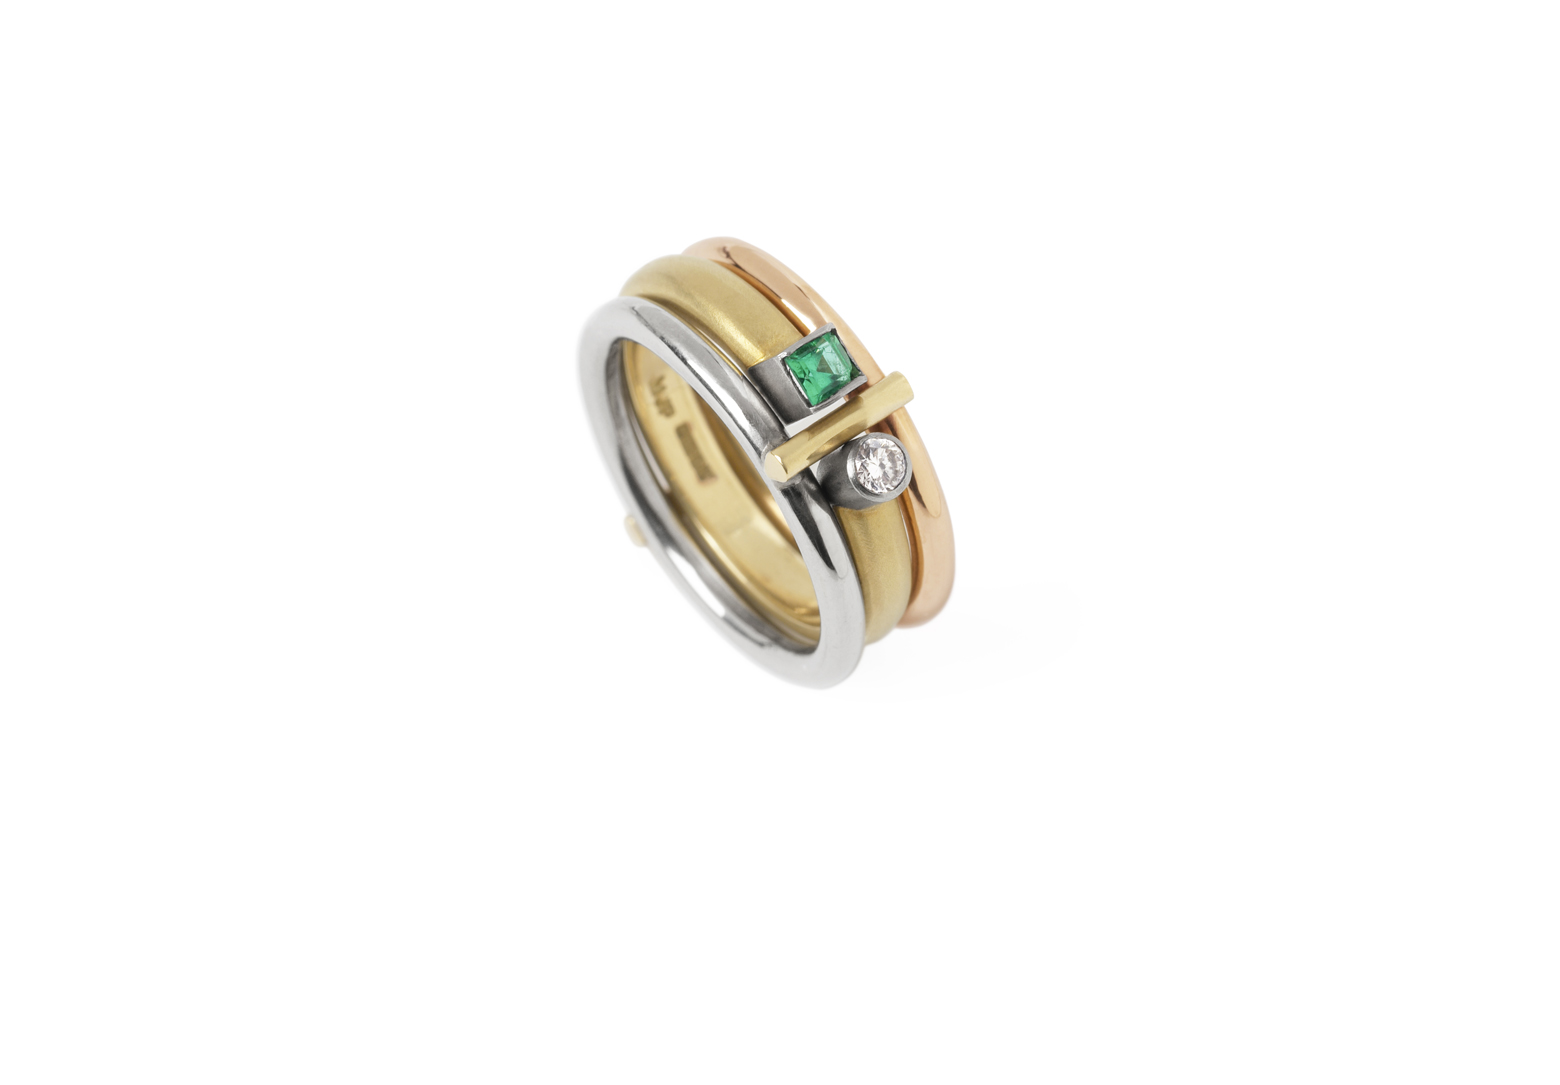 Preva Interlock Emerald Ring Set